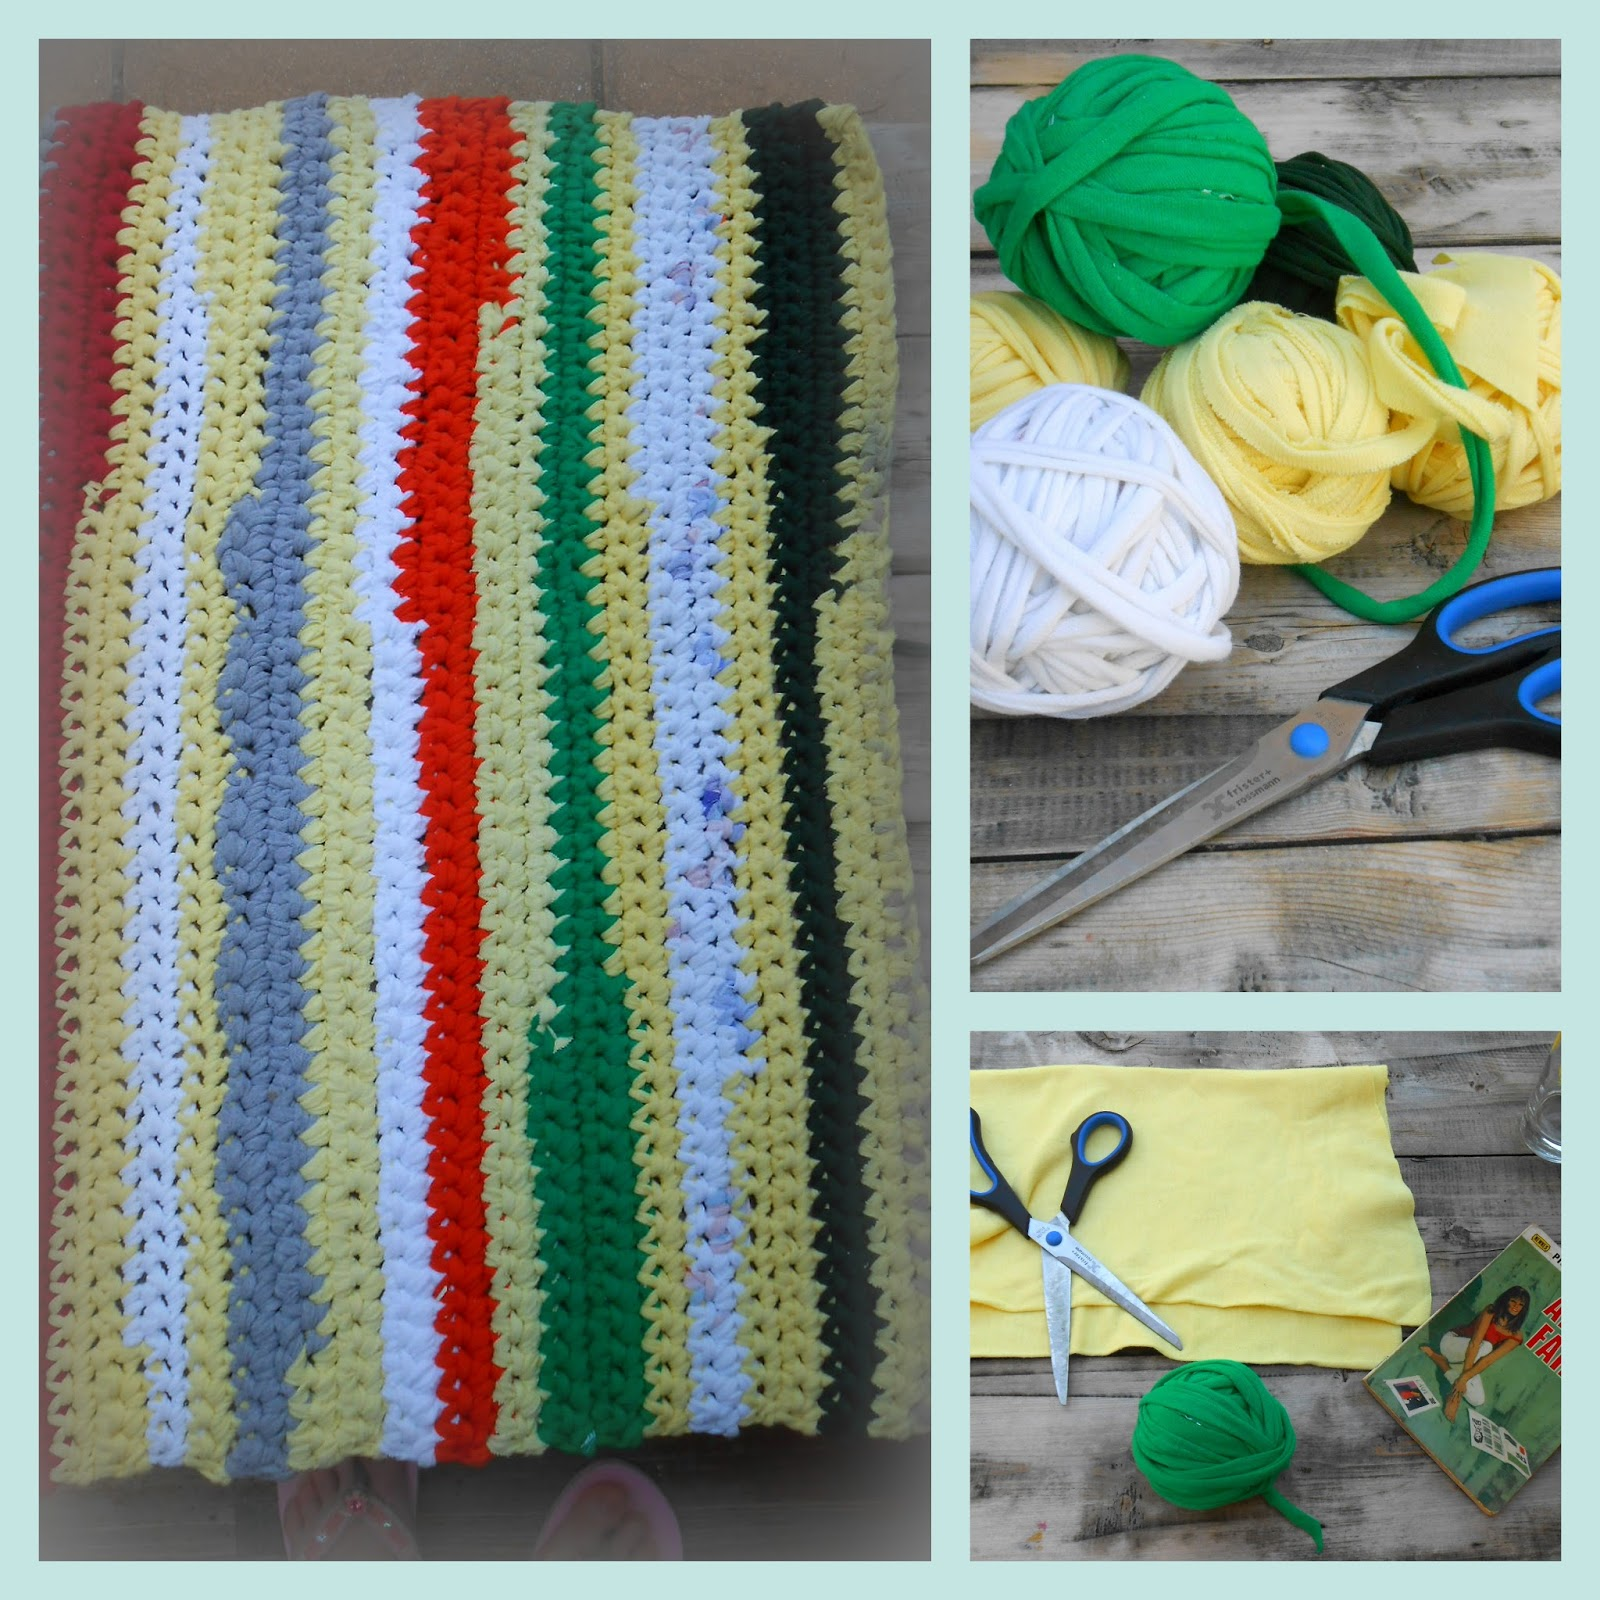 How I Crocheted A Rag Rug From Old T-shts